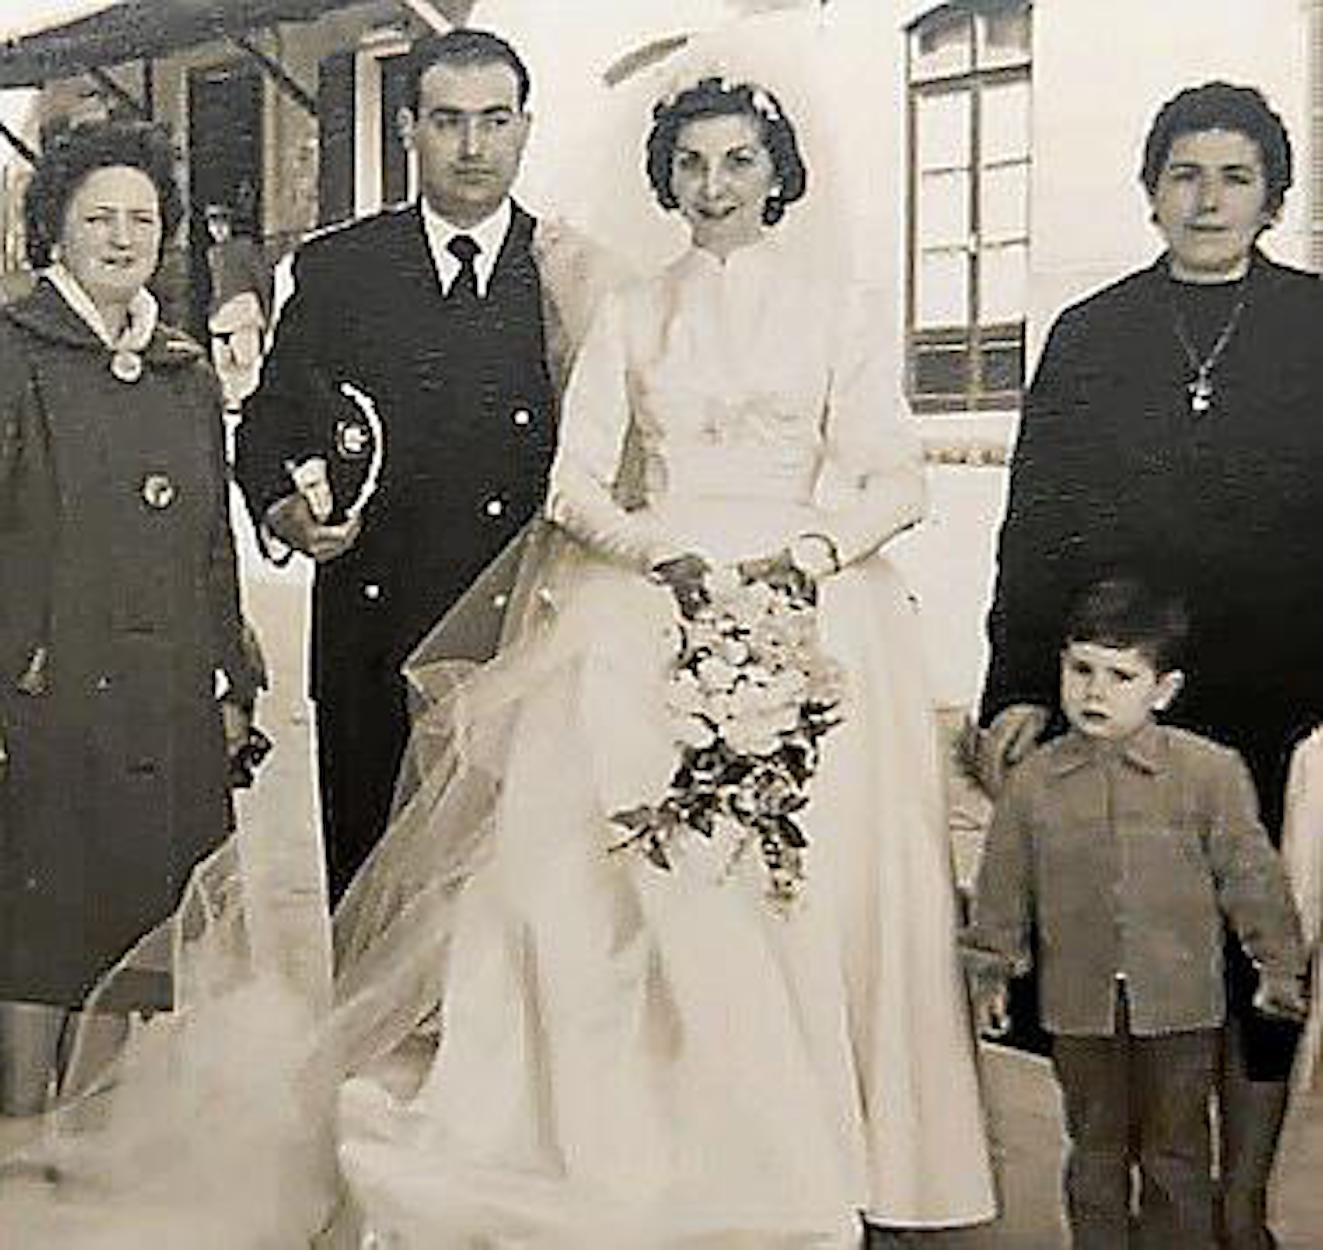 Margarita & husband Miquel Alemany on their wedding day.